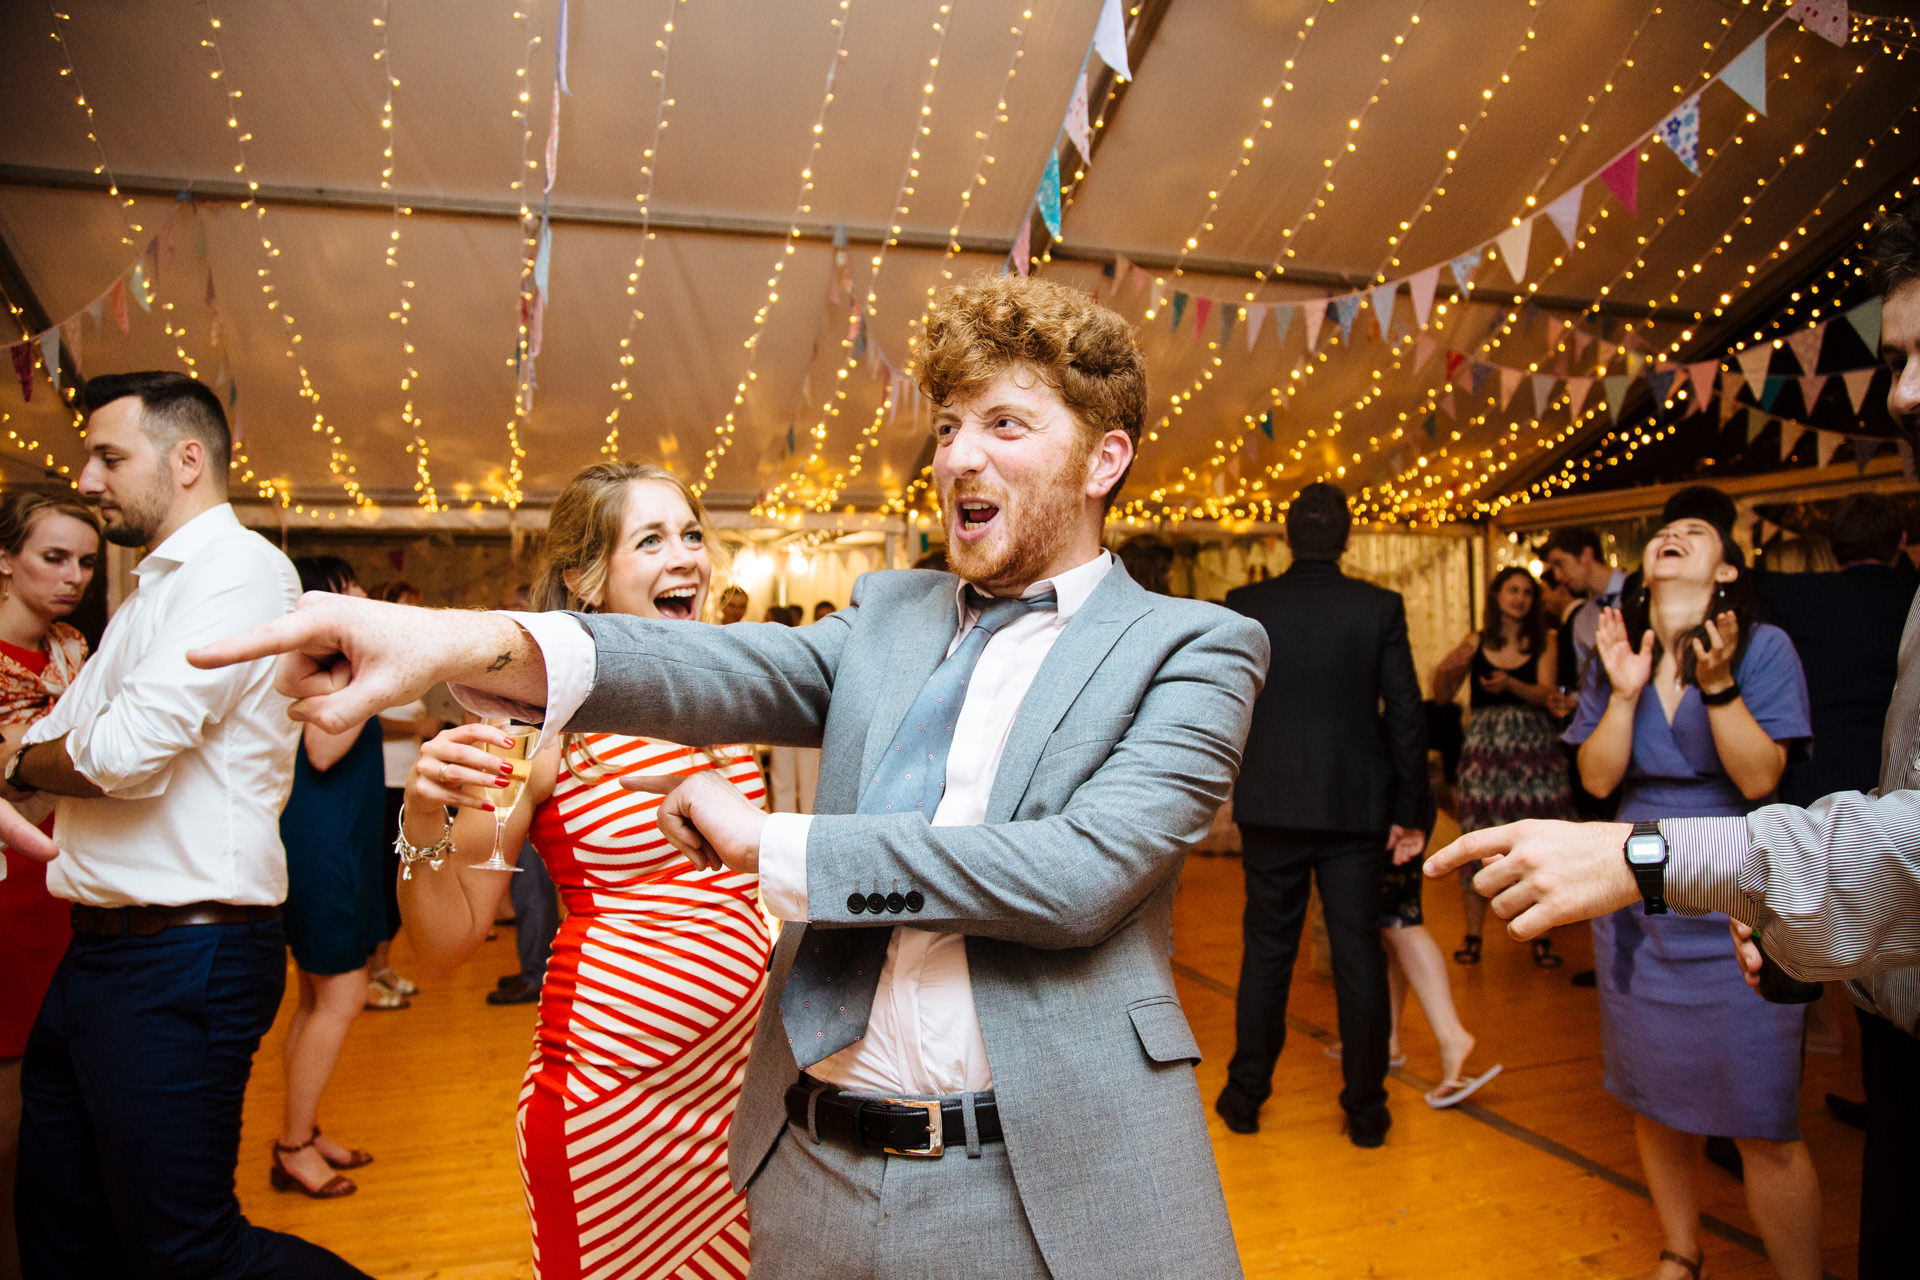 wedding guest laughing and dancing